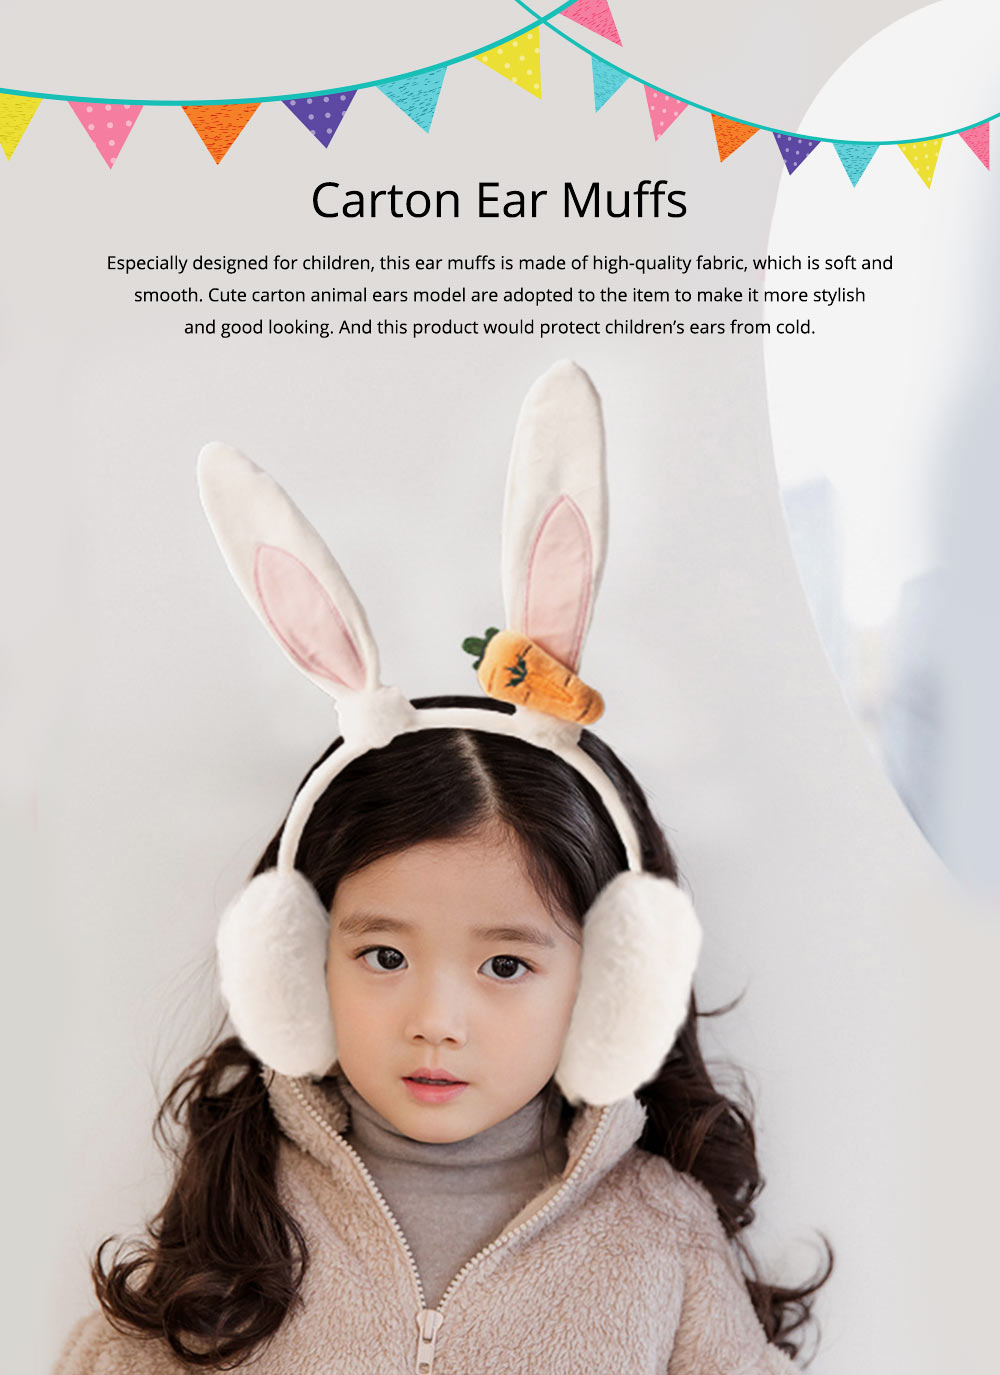 Cute Cartoon Animal Winter Ear Muffs for Children, Kids Warm Soft Fluffy Fleece Head Band Gift 0